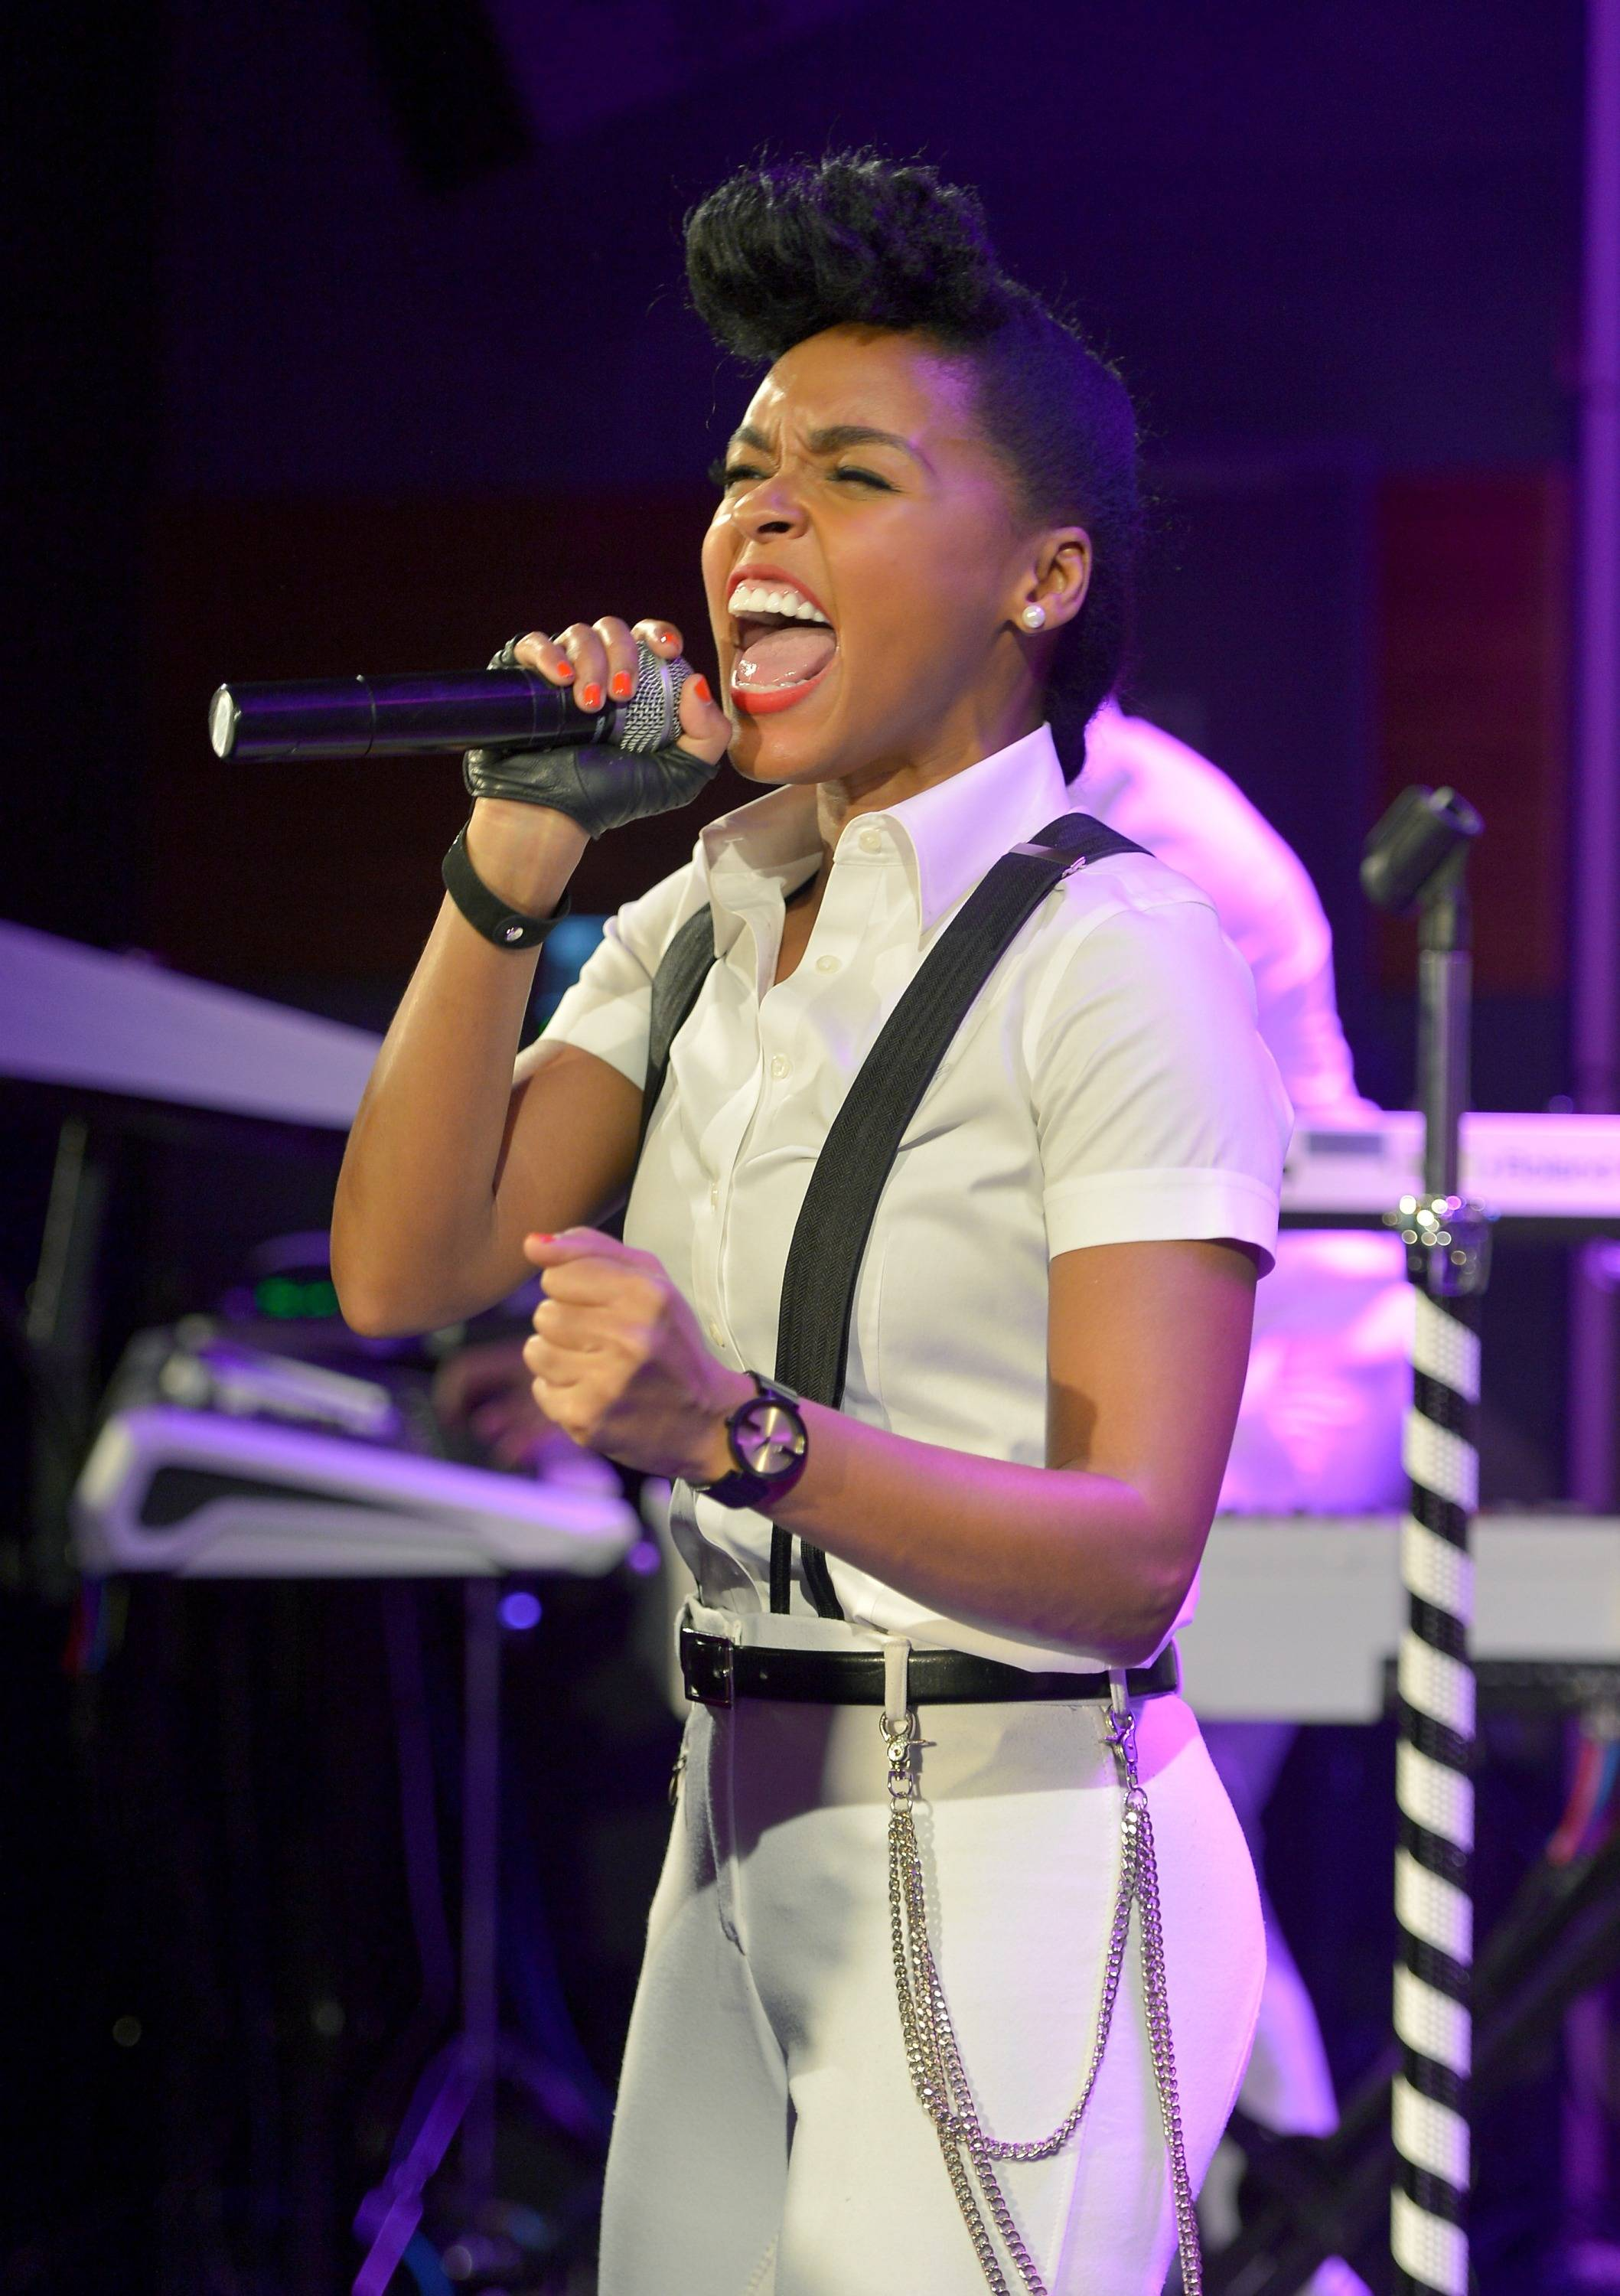 Gucci Timepieces & Jewelry Celebrates The New Gucci GRAMMY Timepiece With Janelle Monae